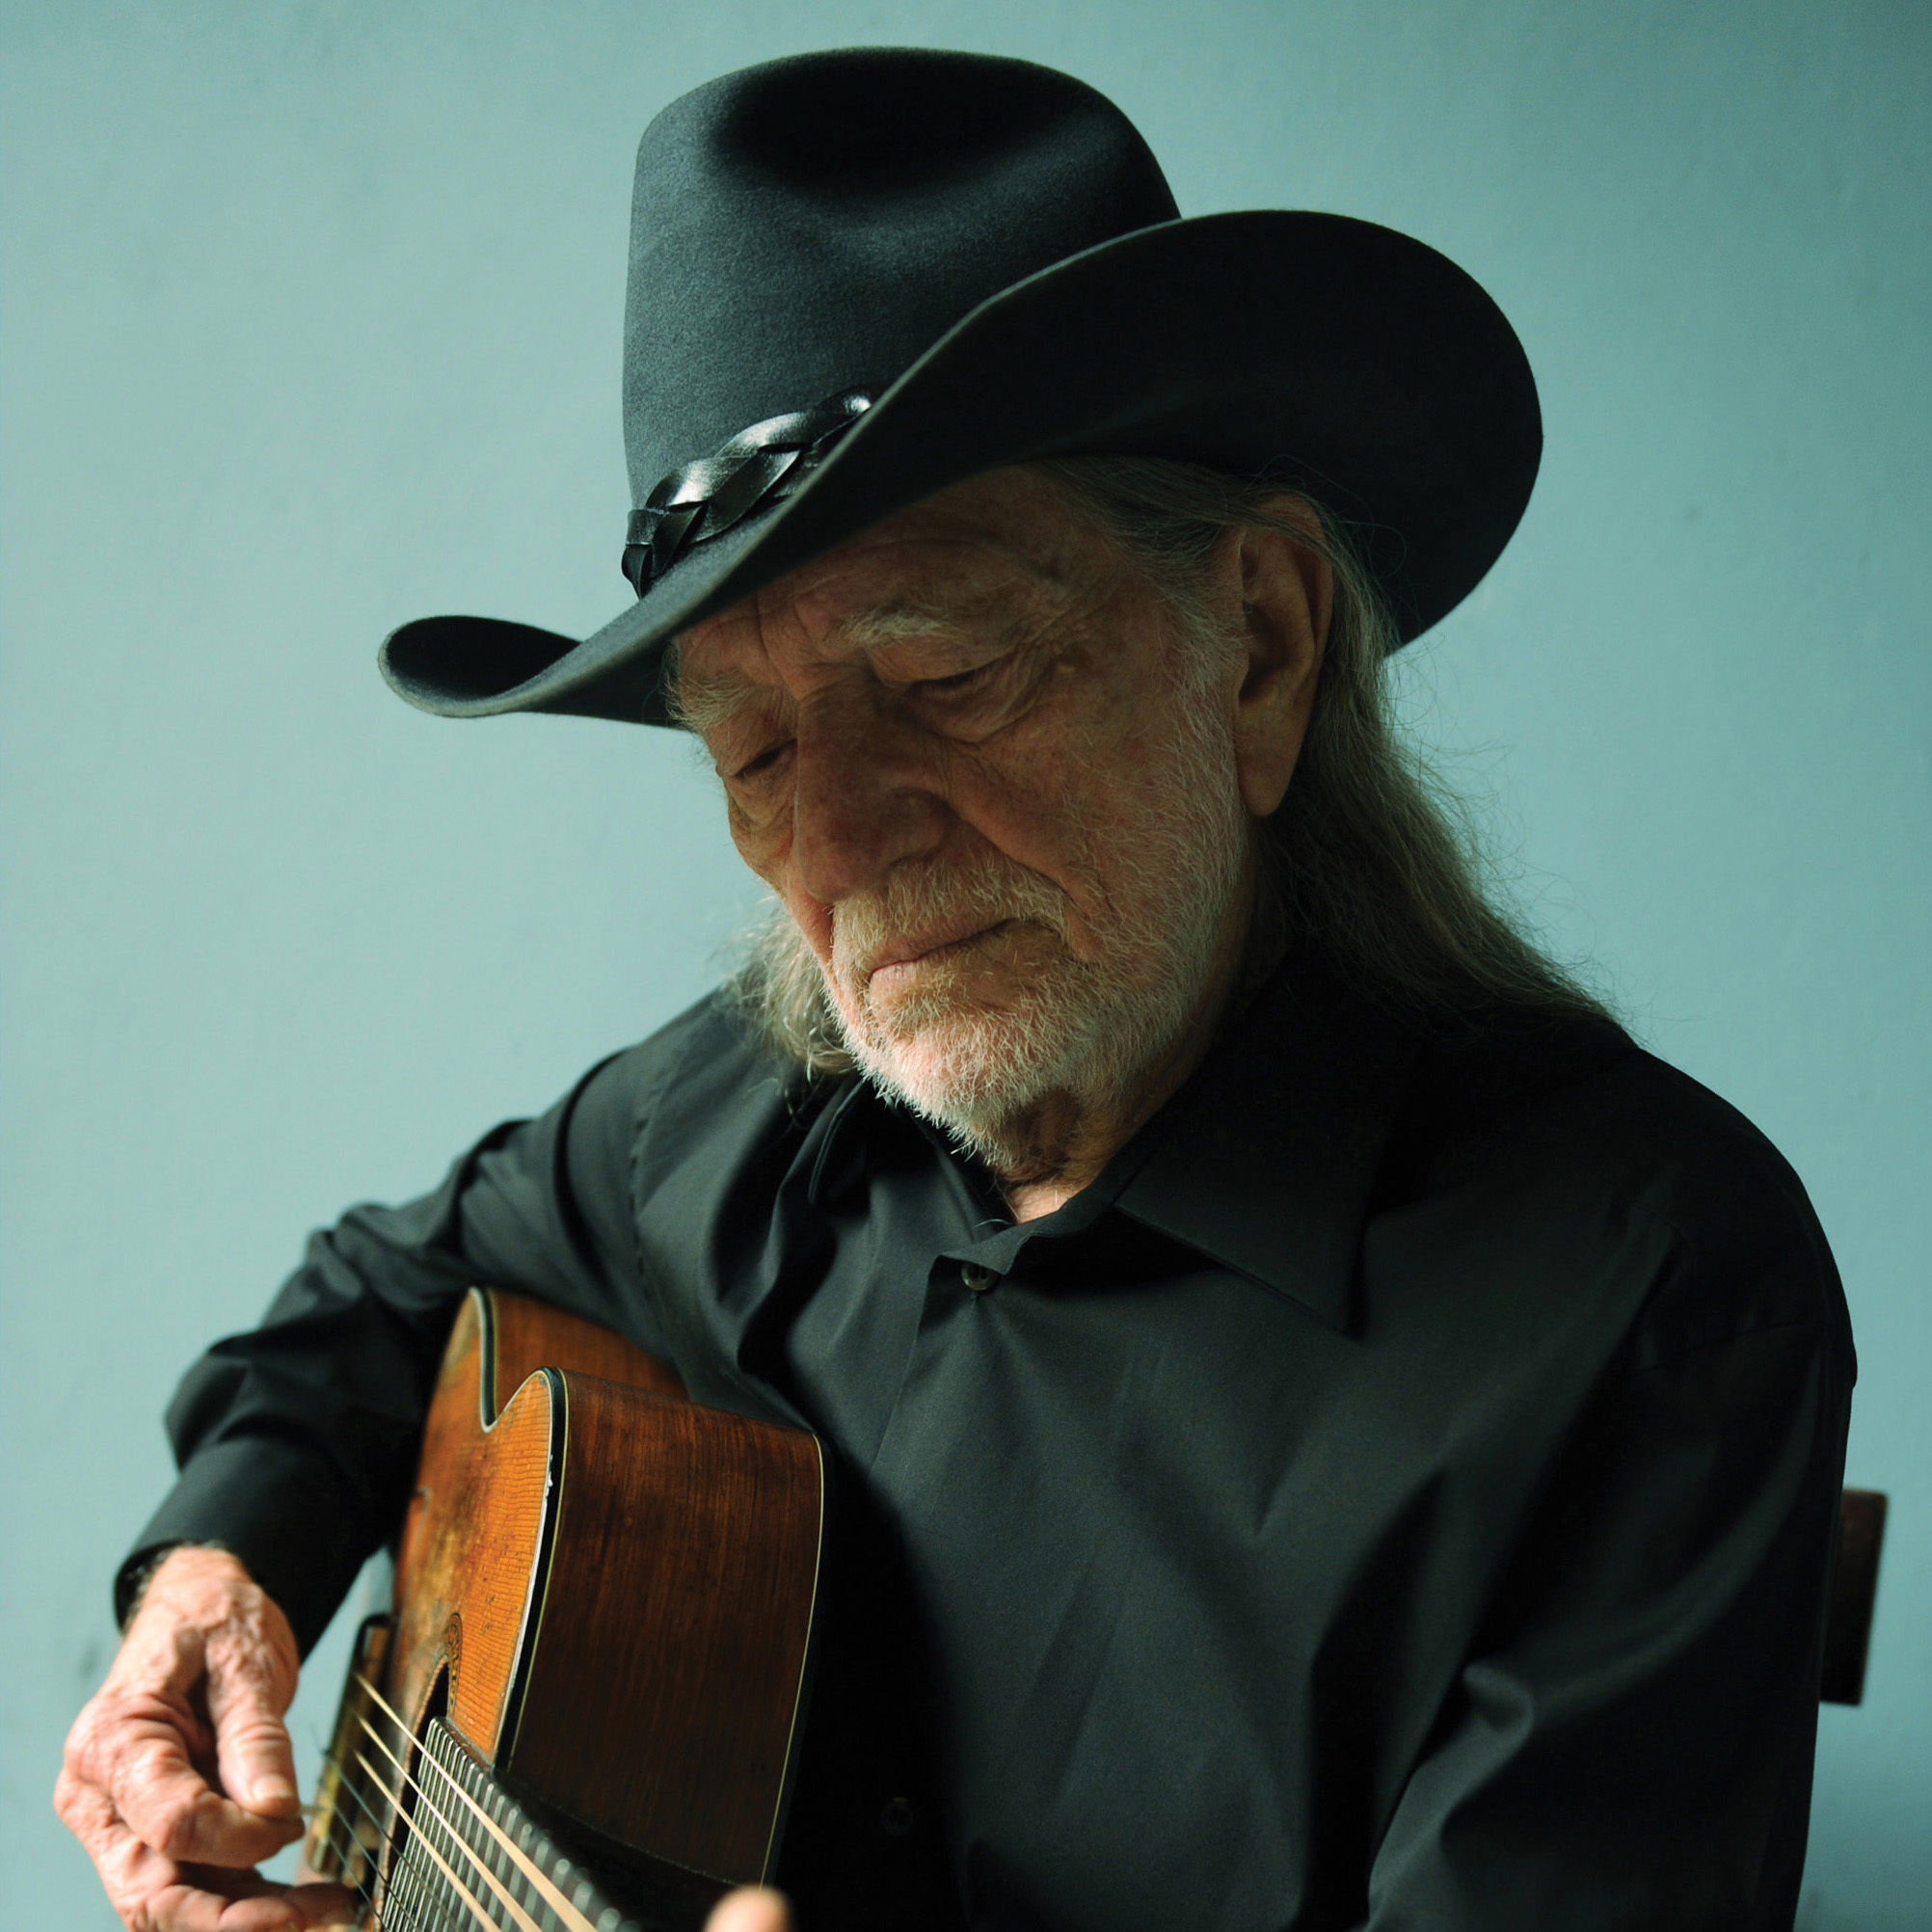 Willie nelson  2 by david mcclister 10.30.2012 shockink kczjgj